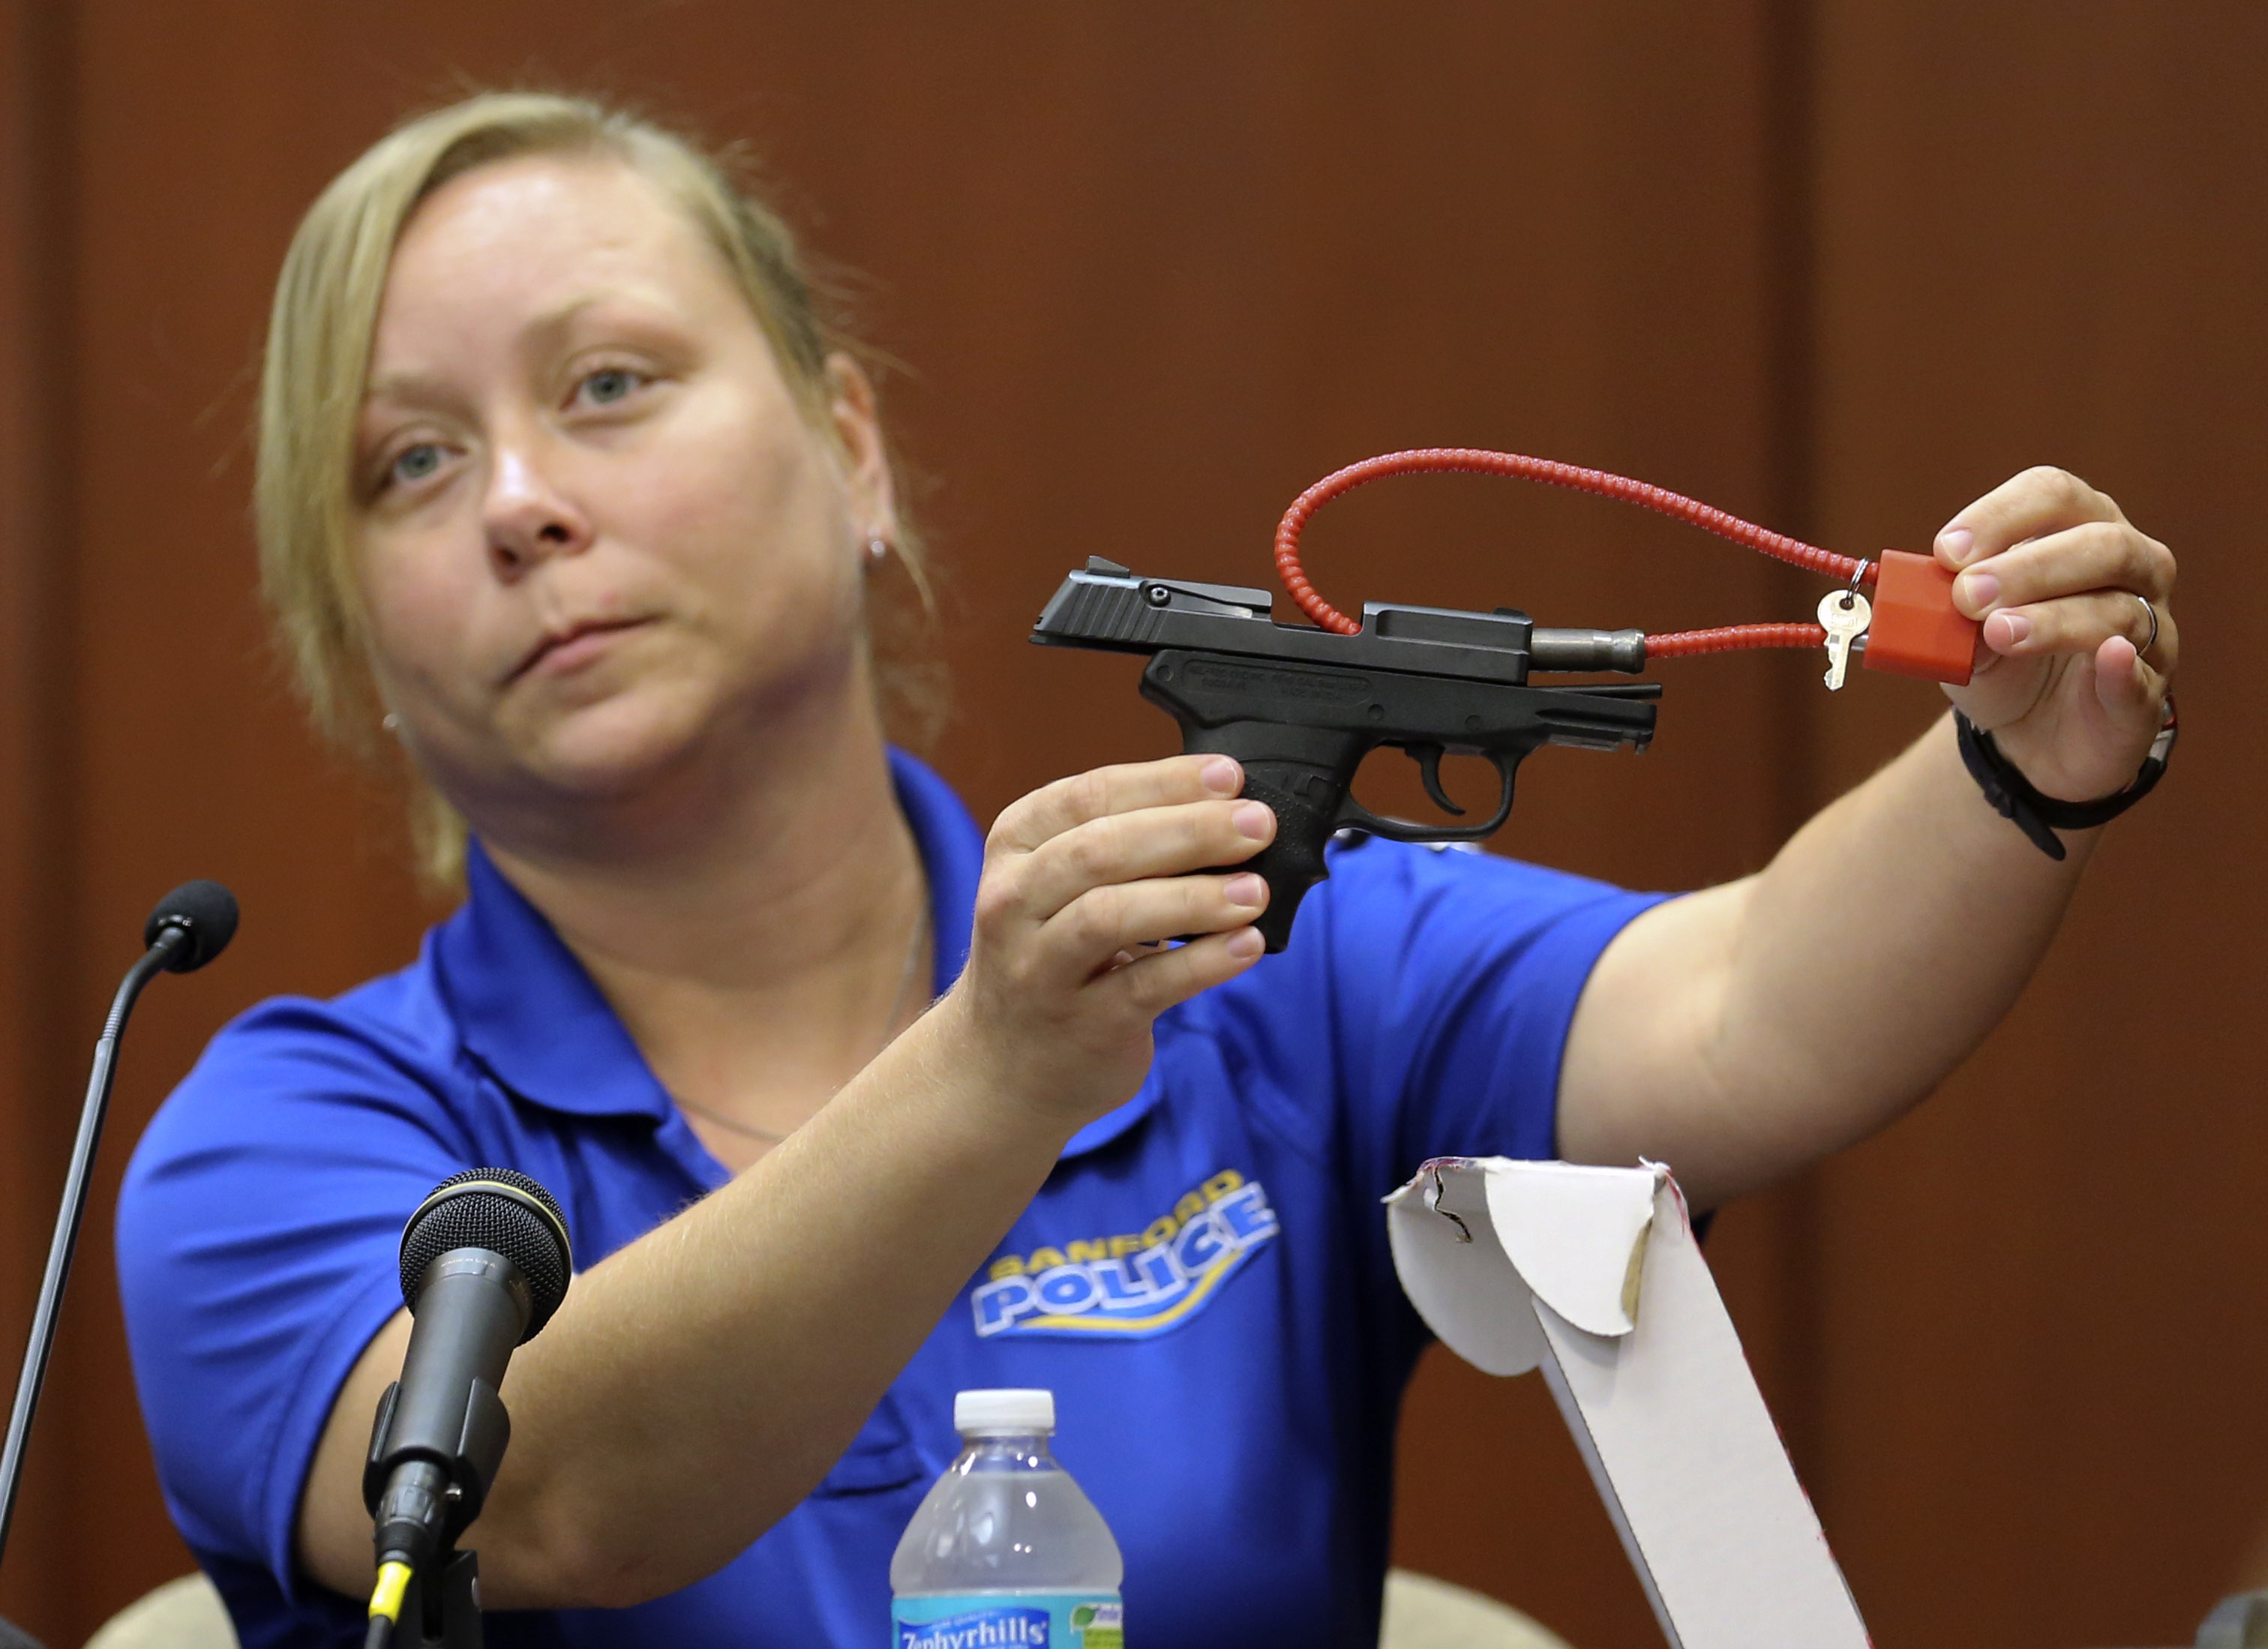 Diana Smith, crime scene technician for the Sanford Police Department, shows the jury a gun that was collected as evidence at the crime scene, during George Zimmerman's trial in Seminole circuit court June 25, 2013 in Sanford, Florida. (Getty)